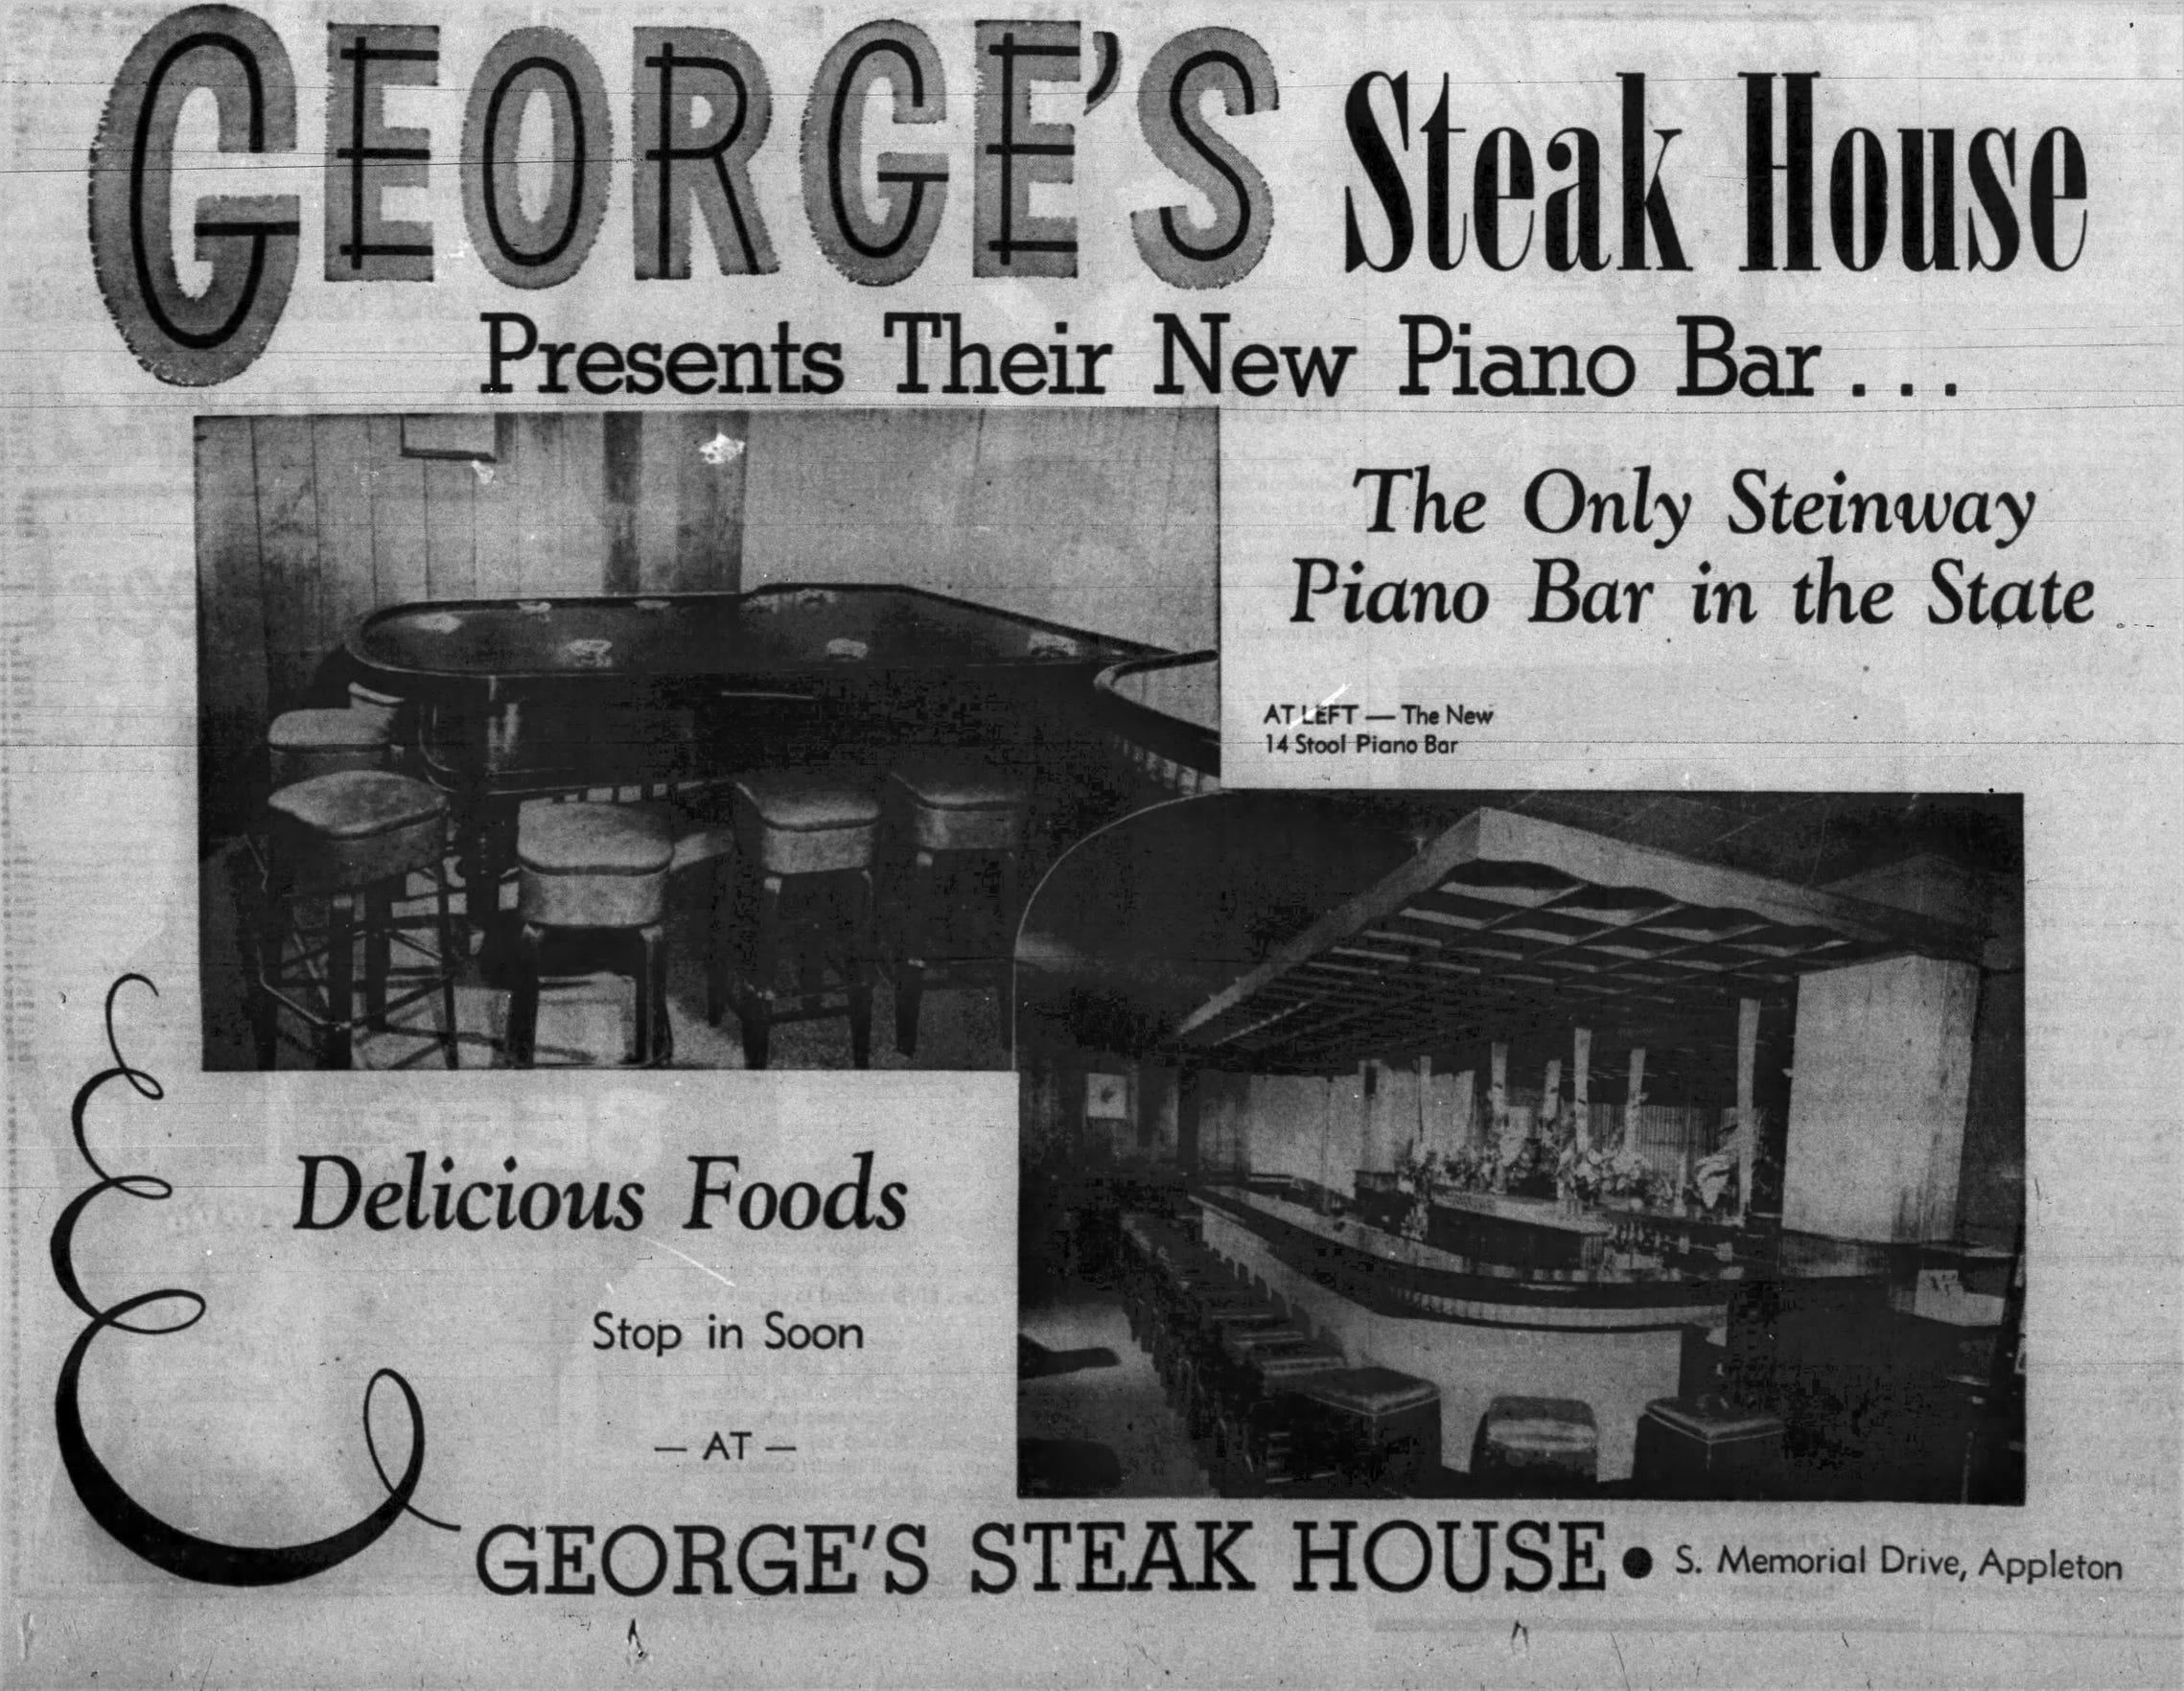 This ad for George's Steak House in Appleton ran in the April 23, 1954 edition of The Post-Crescent.